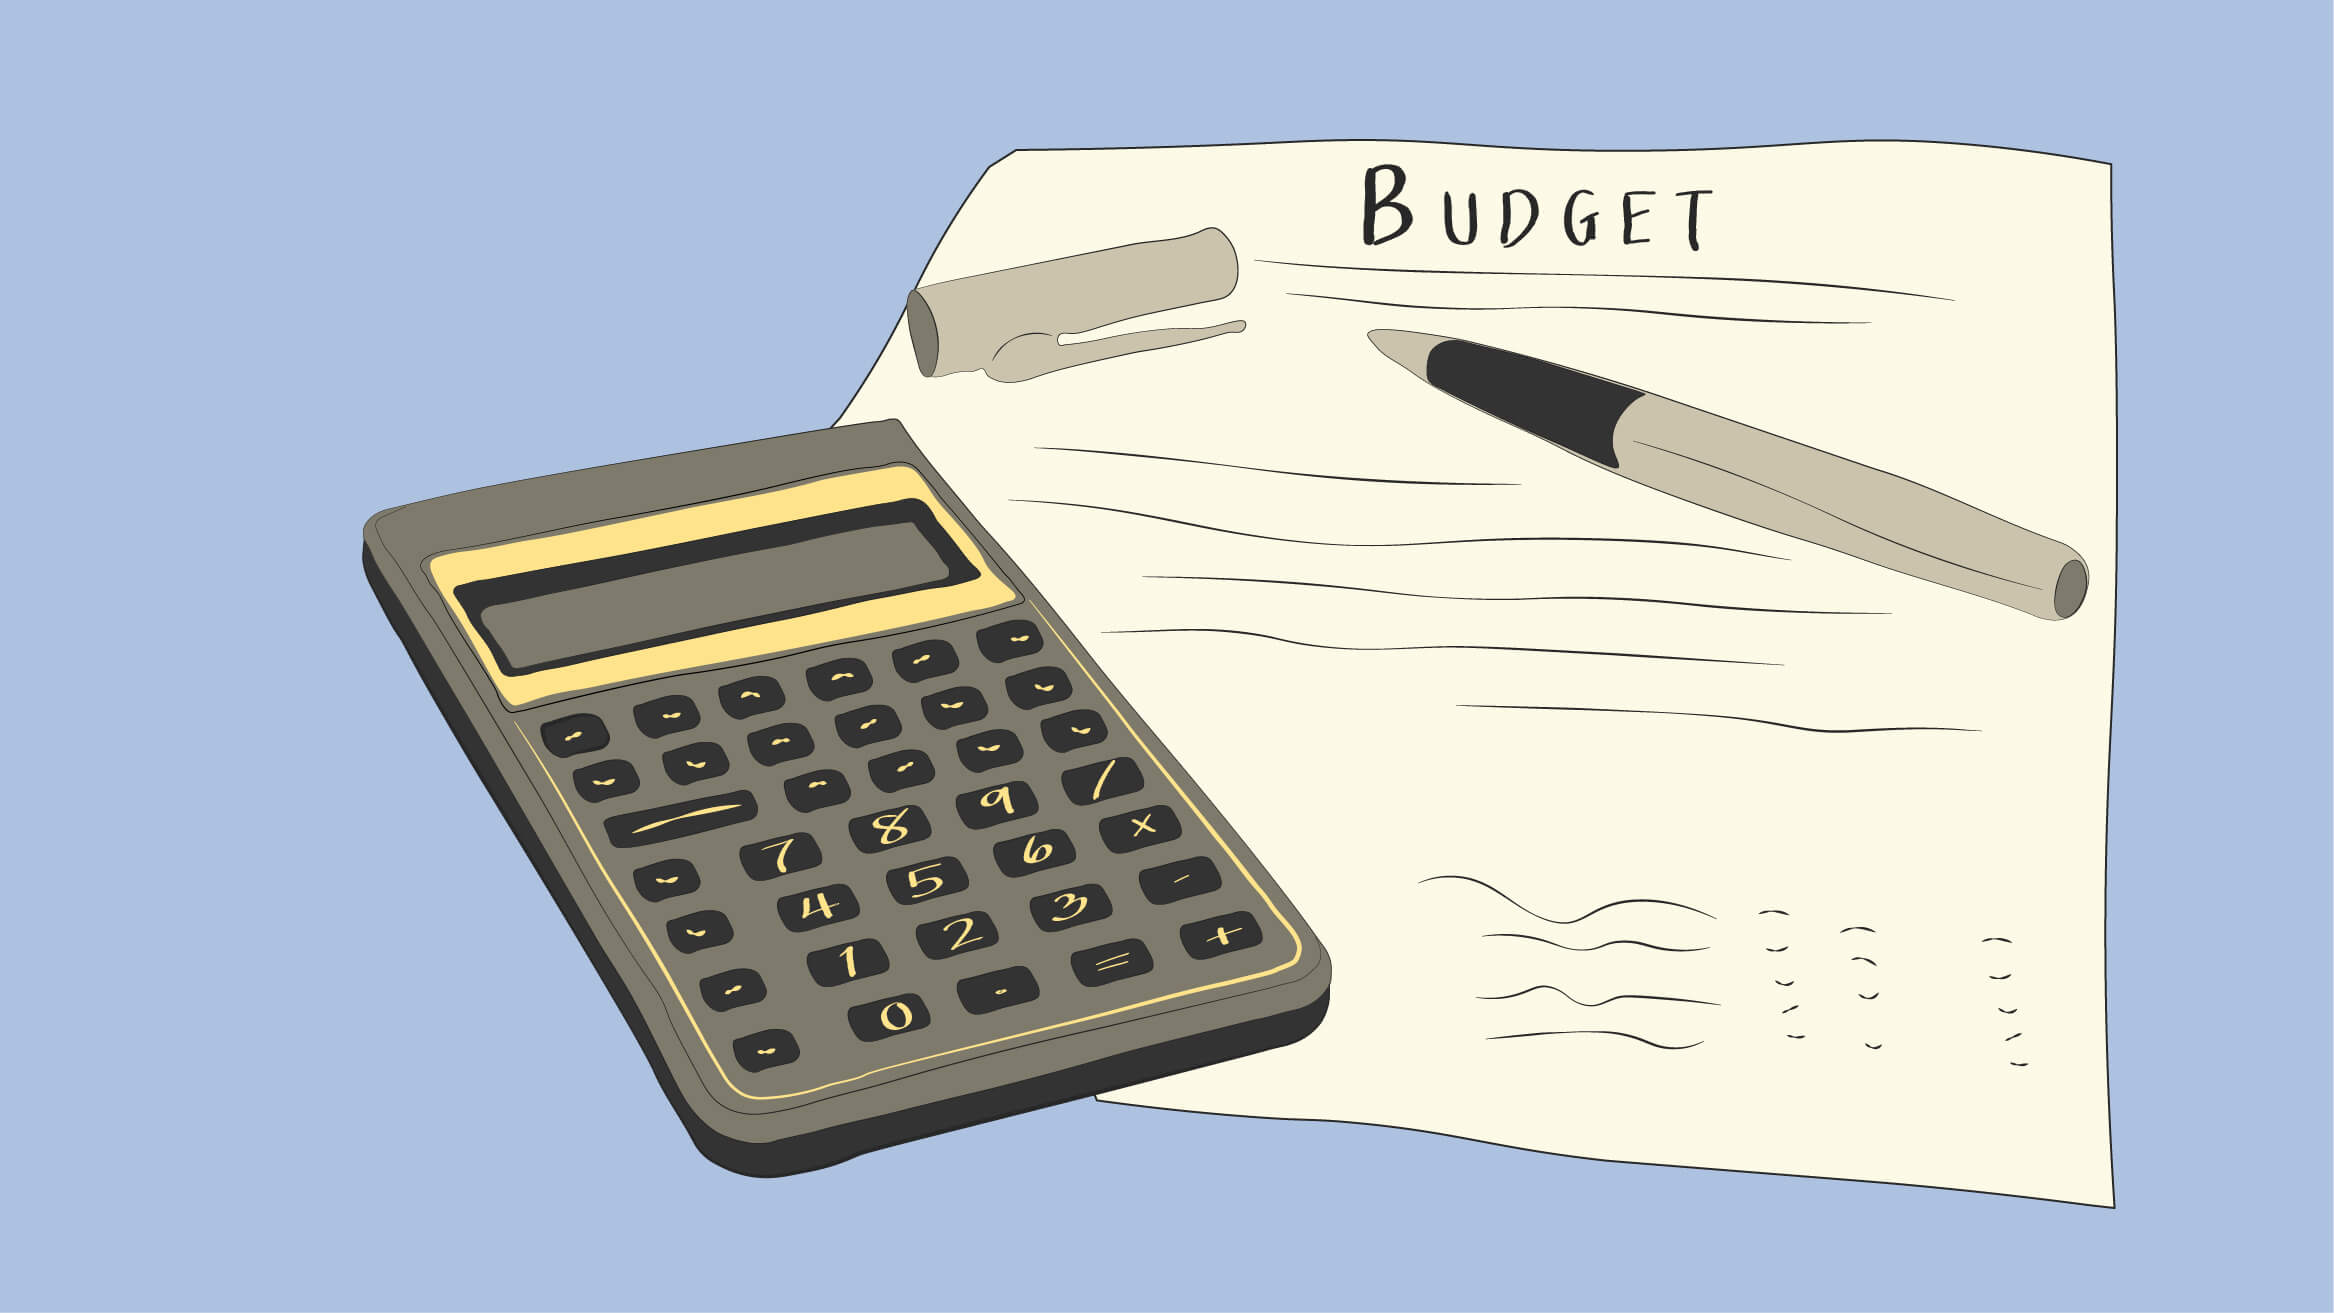 Traditional budget is written on a page with a pen and calculator sitting on top